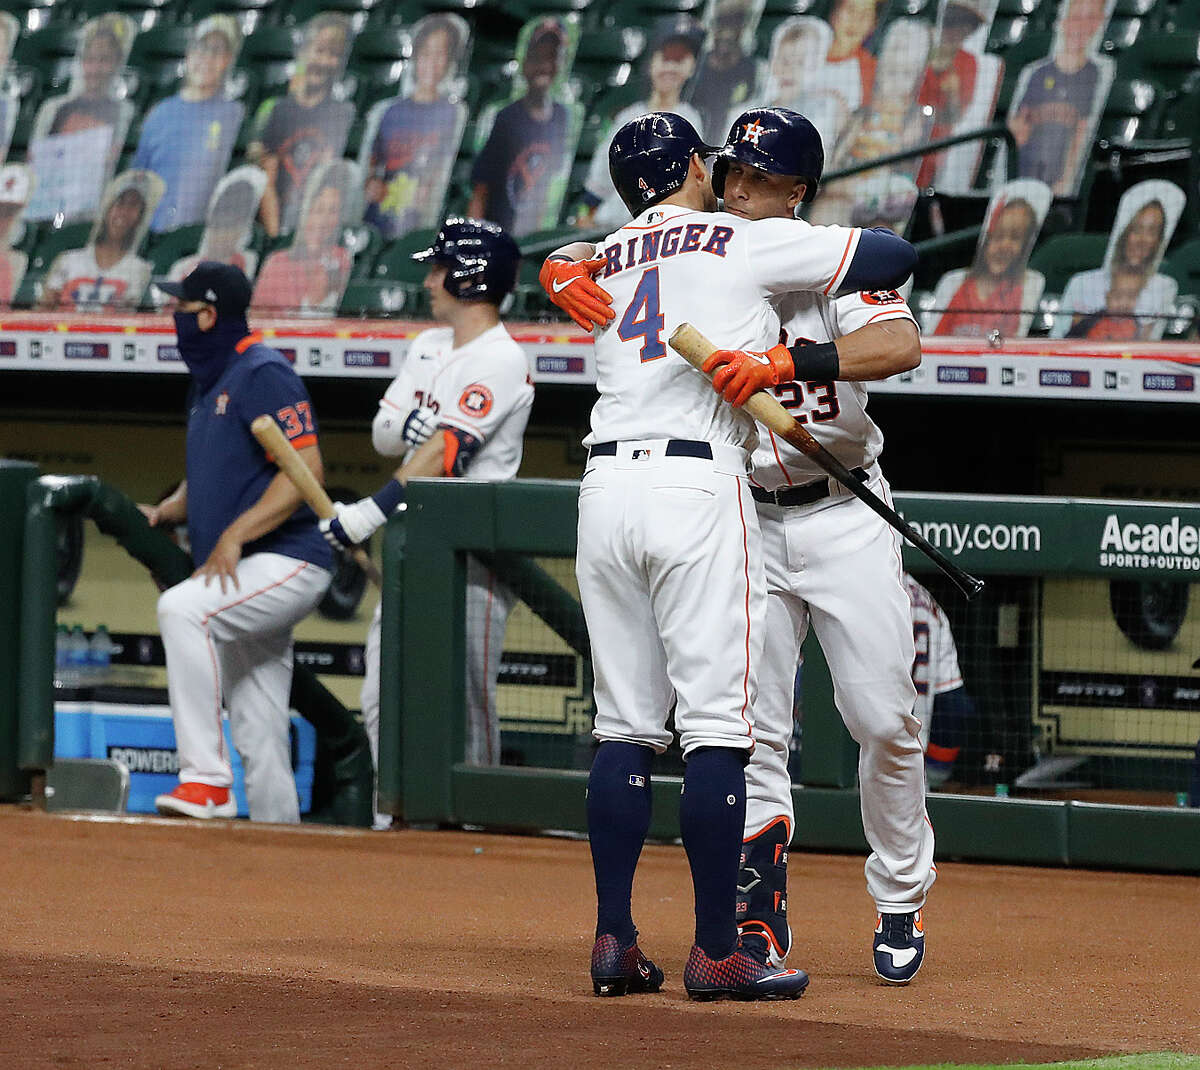 Houston Astros George Springer (4) hugs Michael Brantley (23) after his home run during the first inning of an MLB baseball game at Minute Maid Park, Tuesday, September 15, 2020, in Houston.